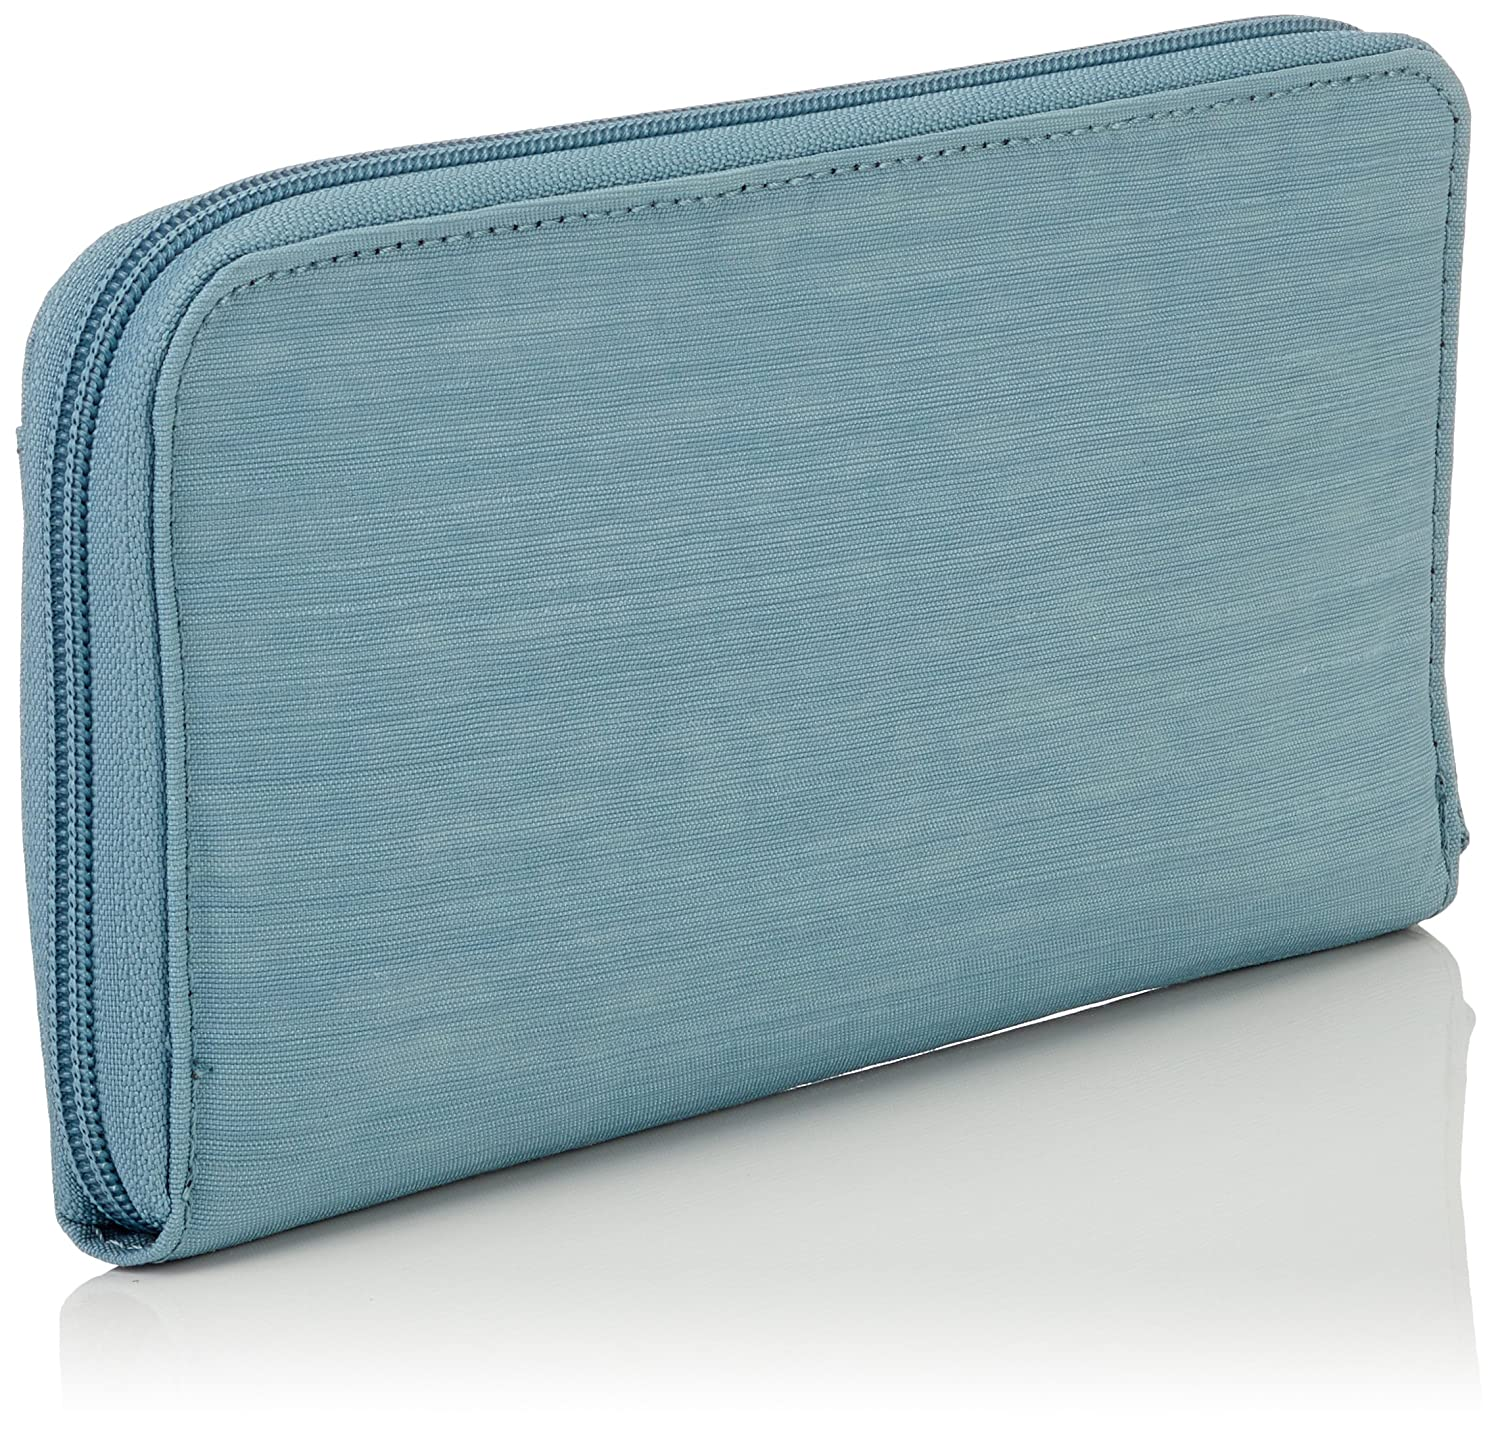 56e1bd94cd02 Kipling Travel Doc, Women's Wallet, Blue (Dazz Soft Aloe), 15x24x45 ...